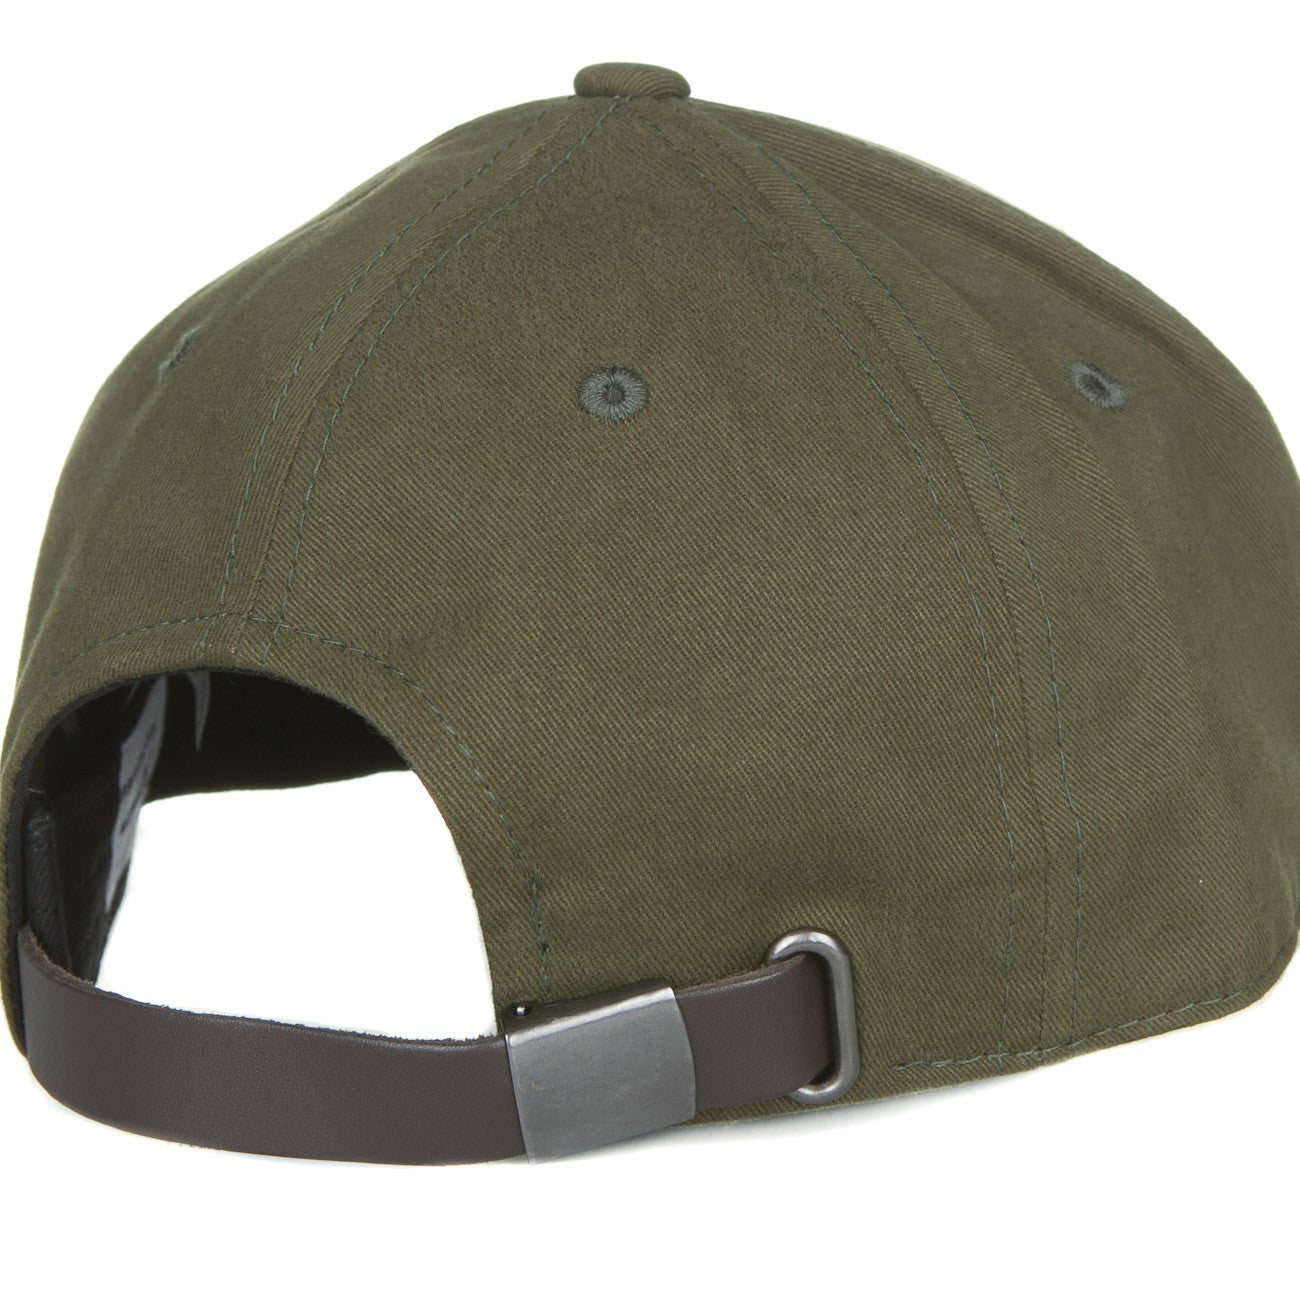 3e60a9d8a0818 Champion Classic Twill Cap - Style Up